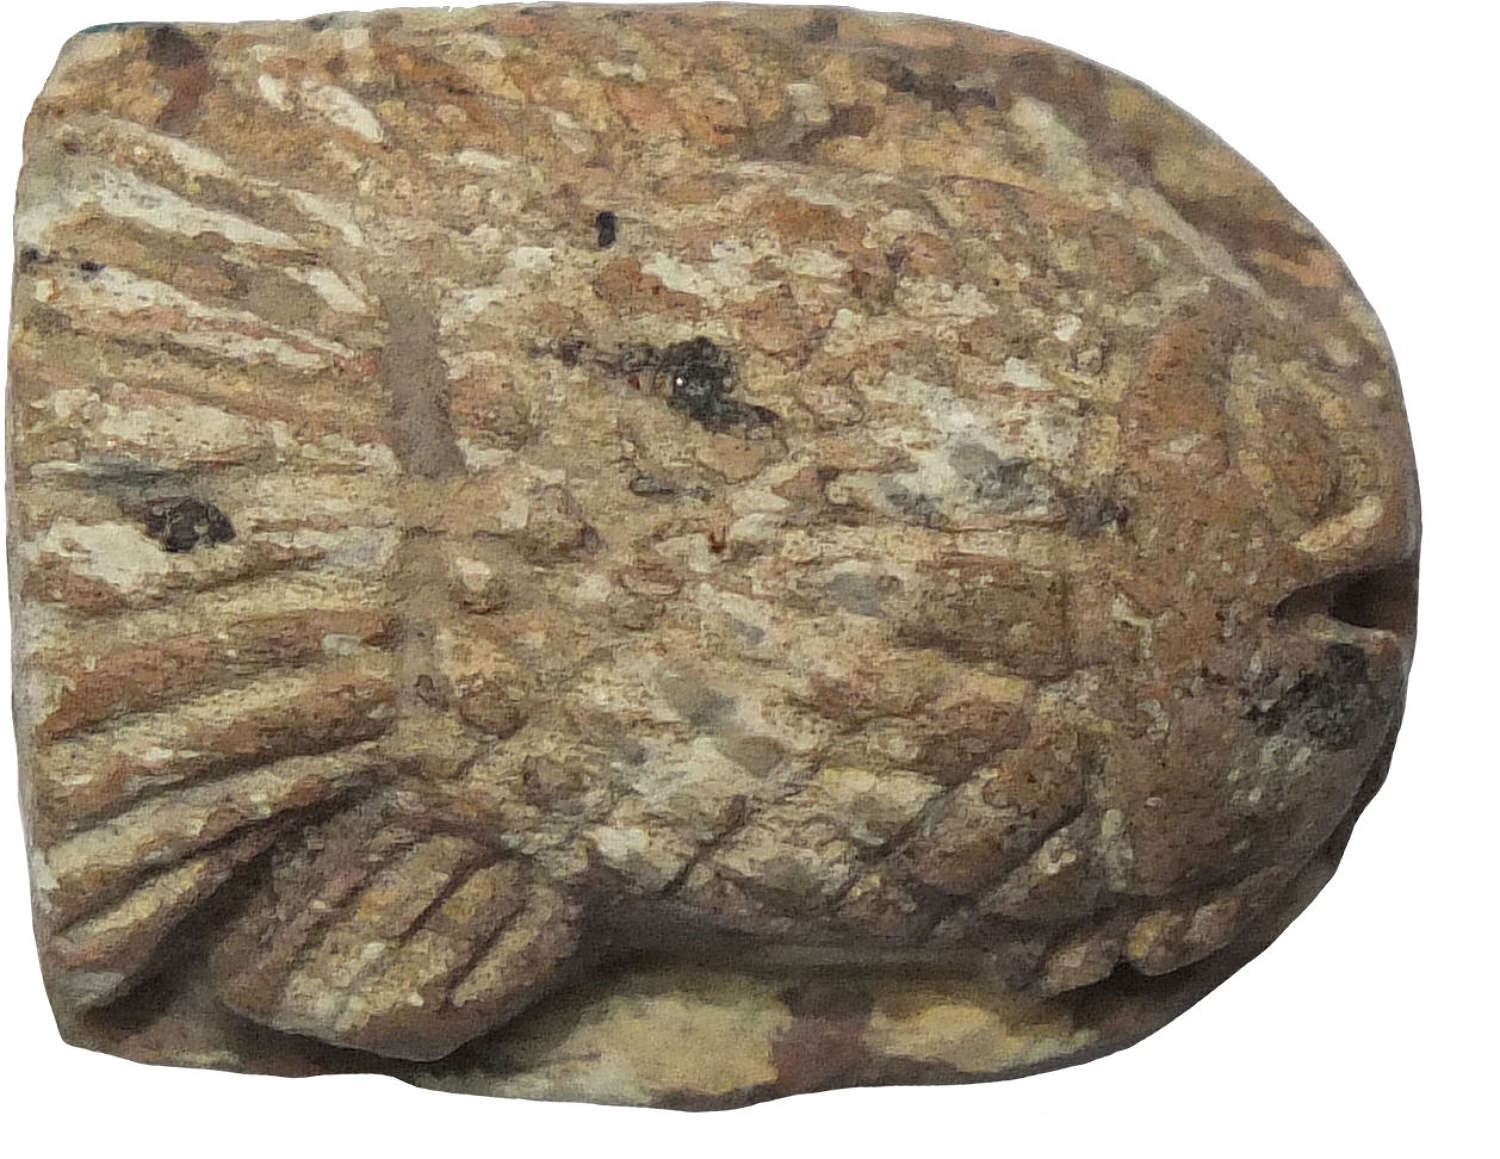 An Egyptian steatite scaraboid in the shape of a fish